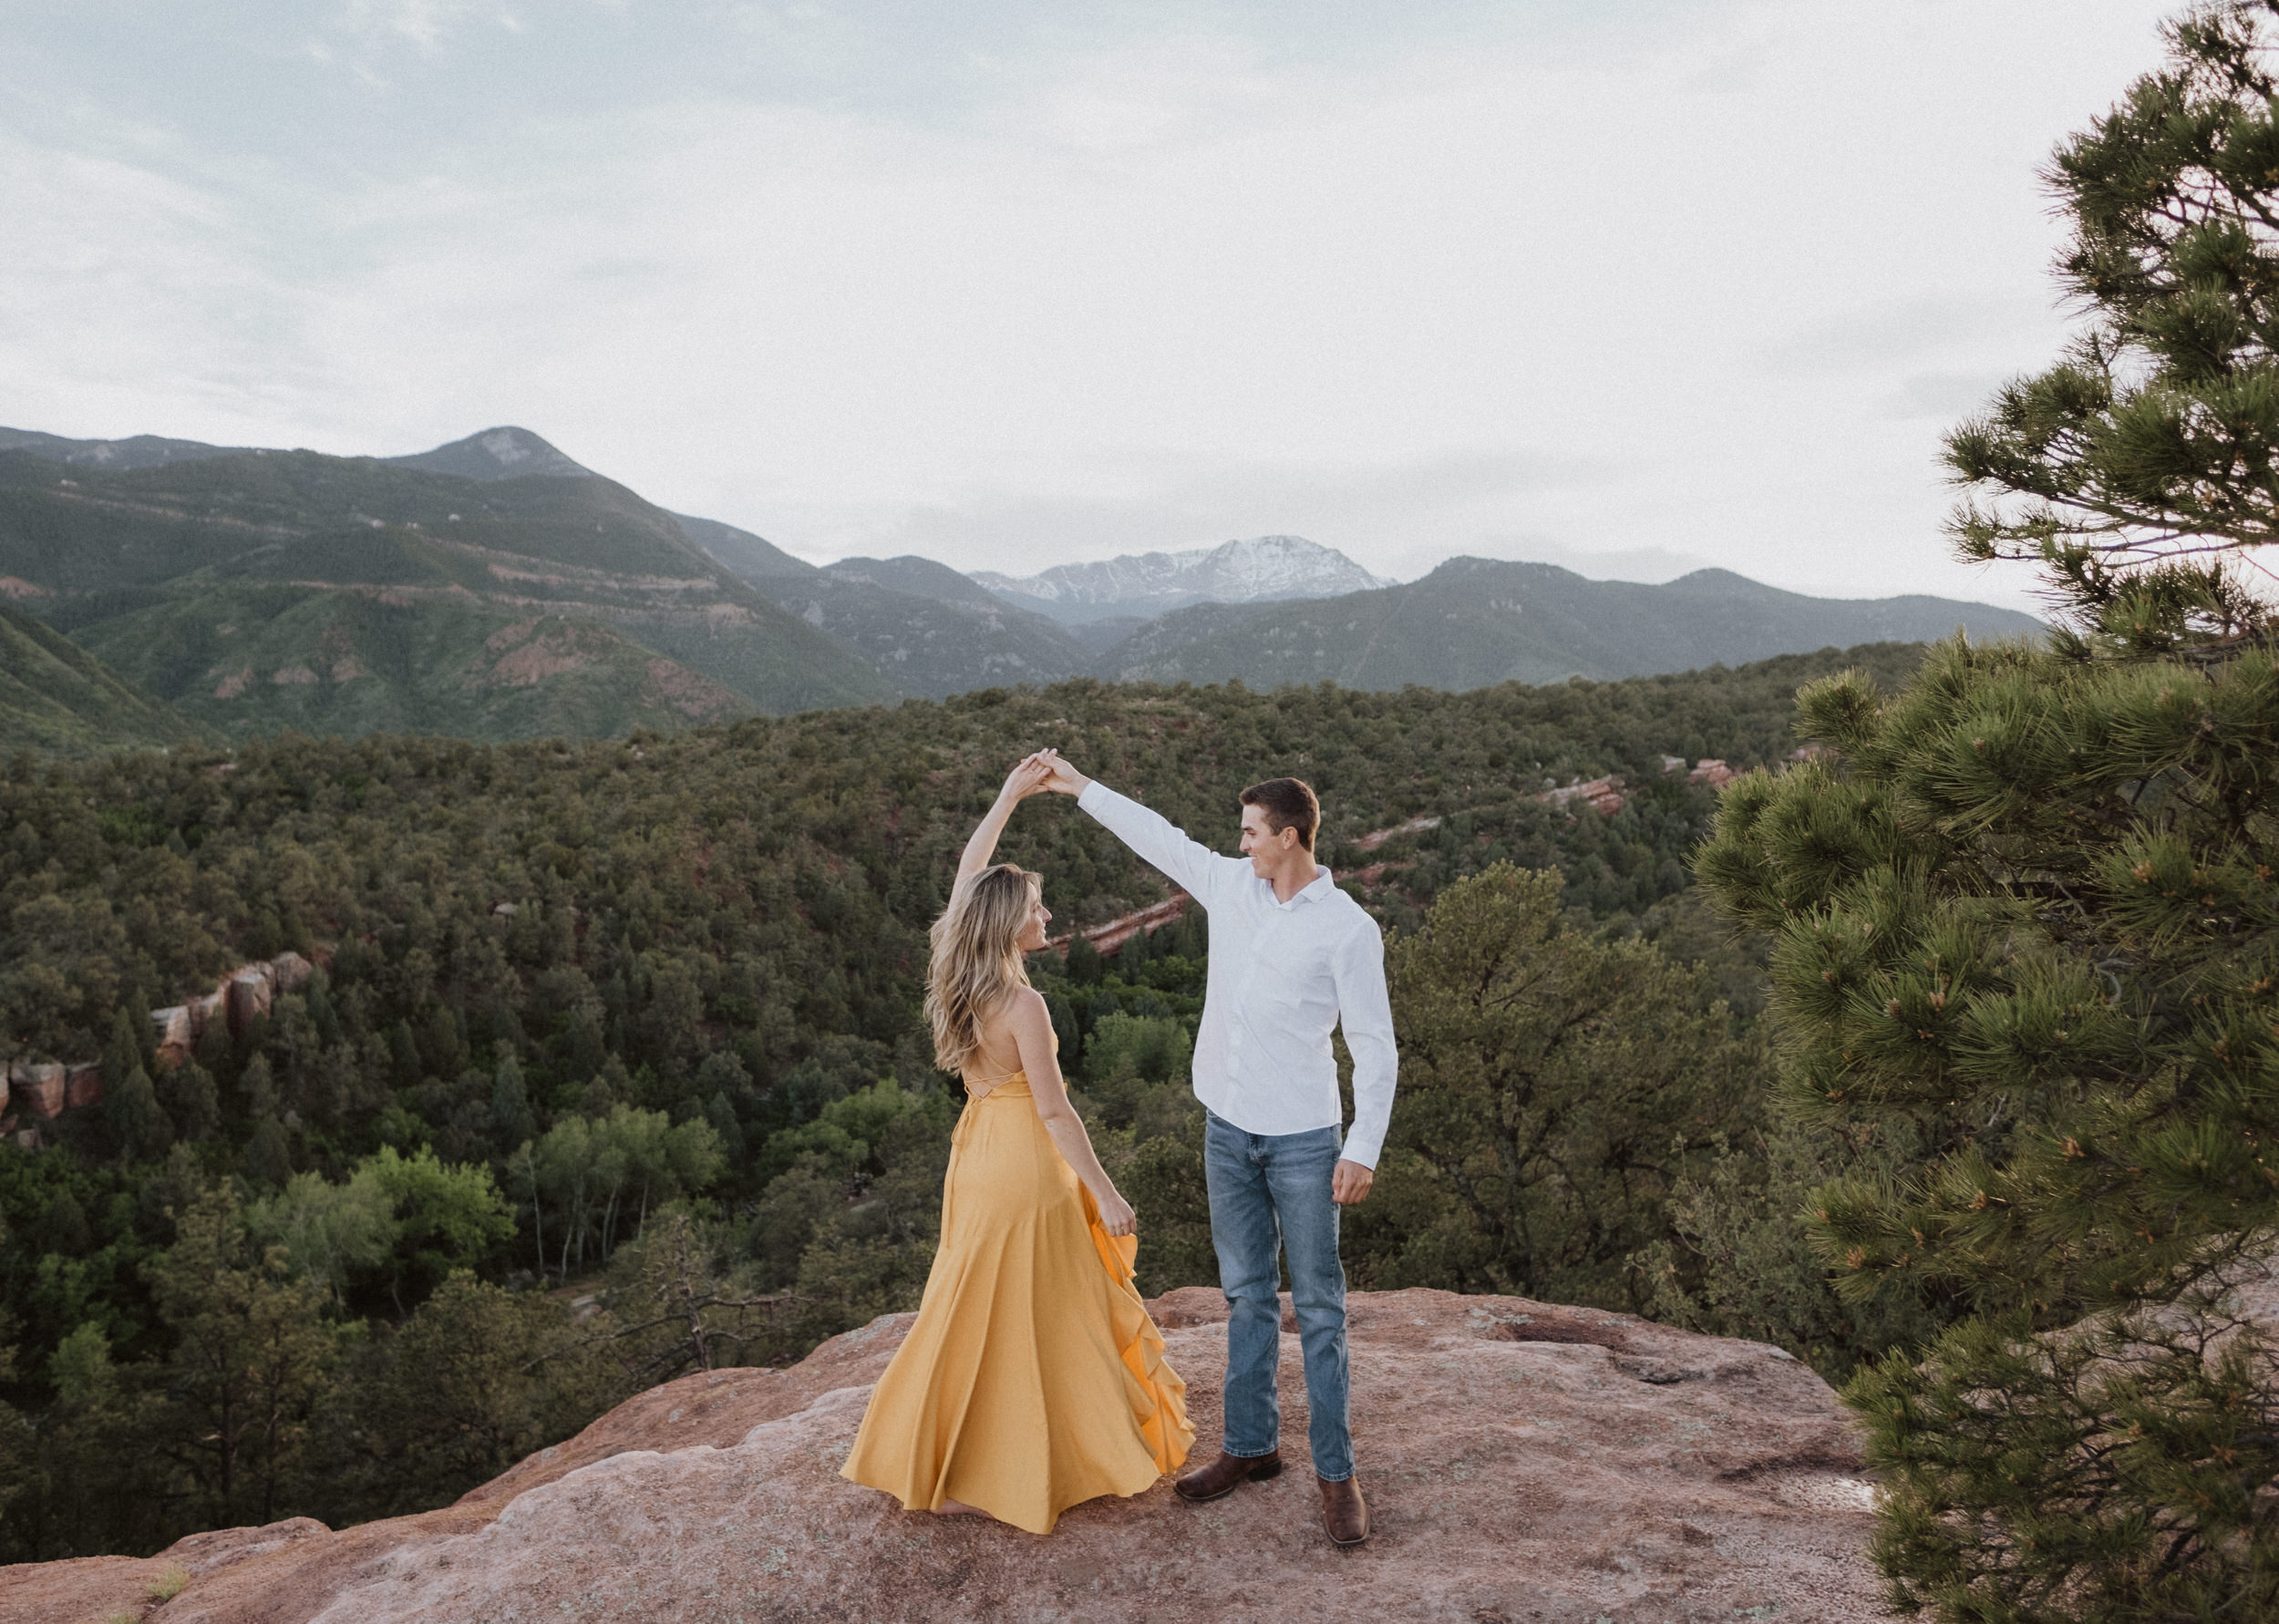 Colorado Springs engagement photo locations. Garden of the Gods engagement session. Colorado Springs wedding photography.